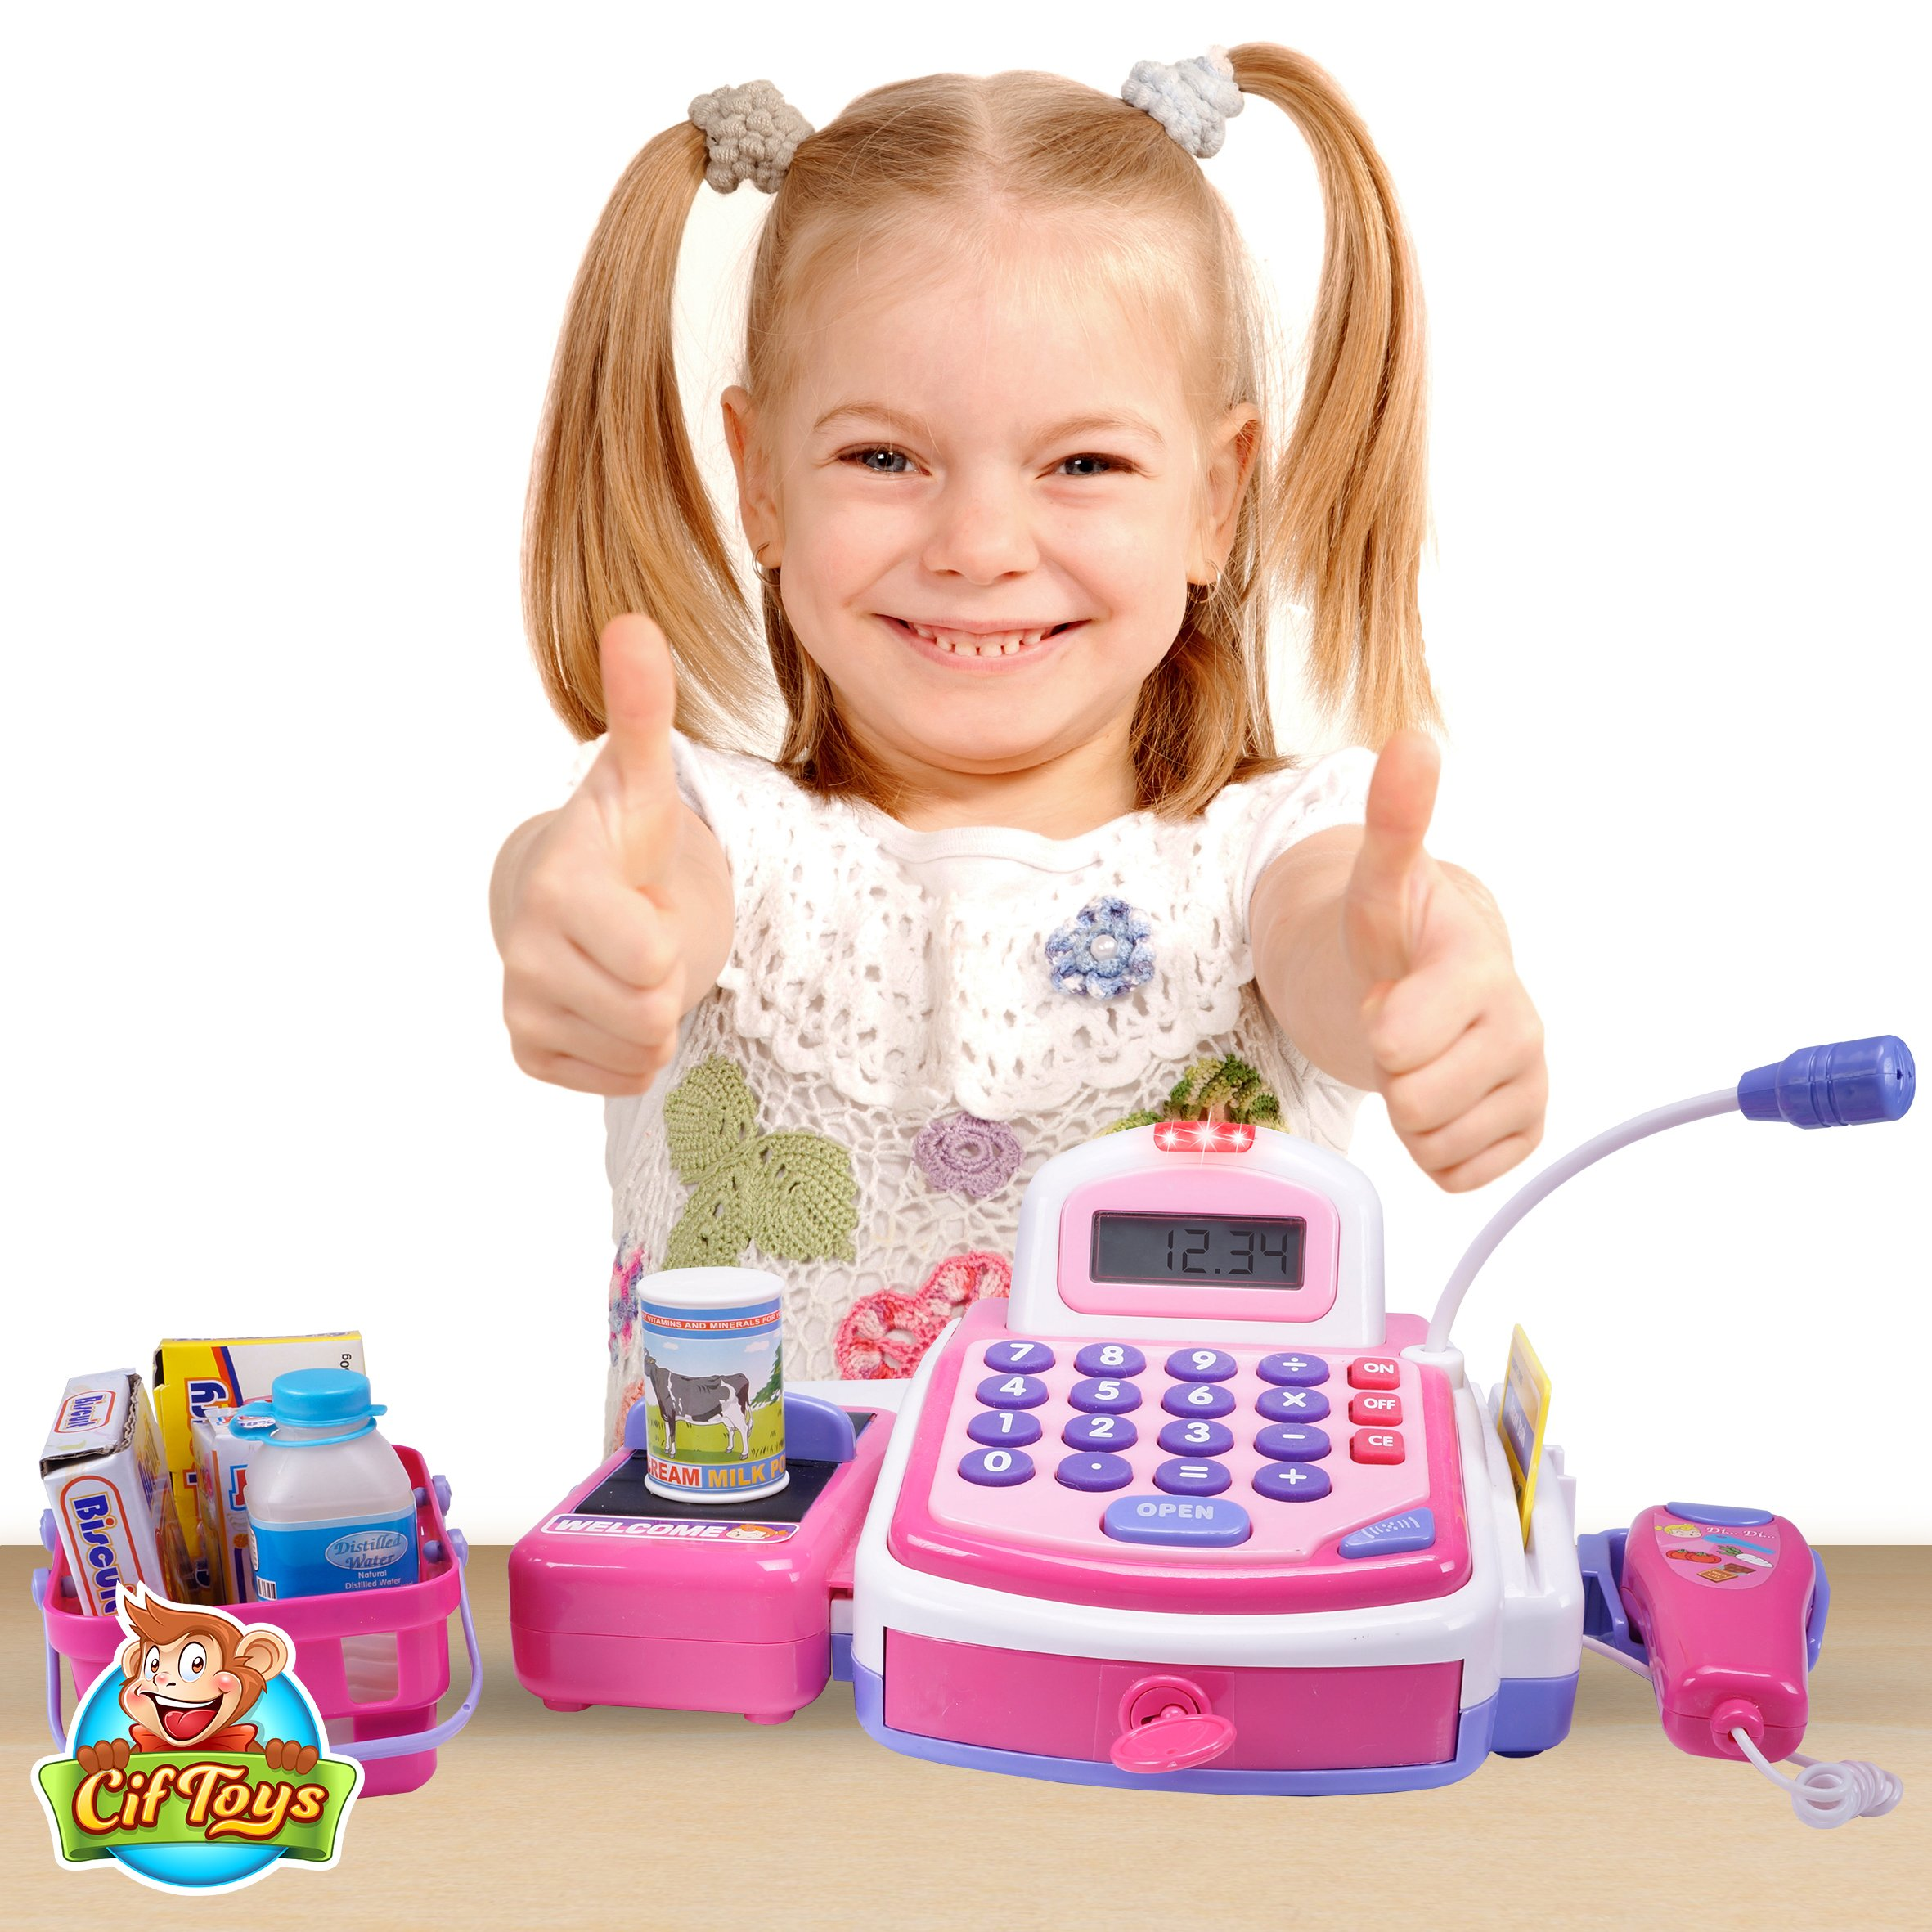 CifToys Cashier Toy Cash Register Playset | Pretend Play Set for Kids | Colorful Children's Supermarket Checkout Toy with Microphone & Sounds | Ideal Gift for Toddlers & Pre-Schoolers by CifToys (Image #2)